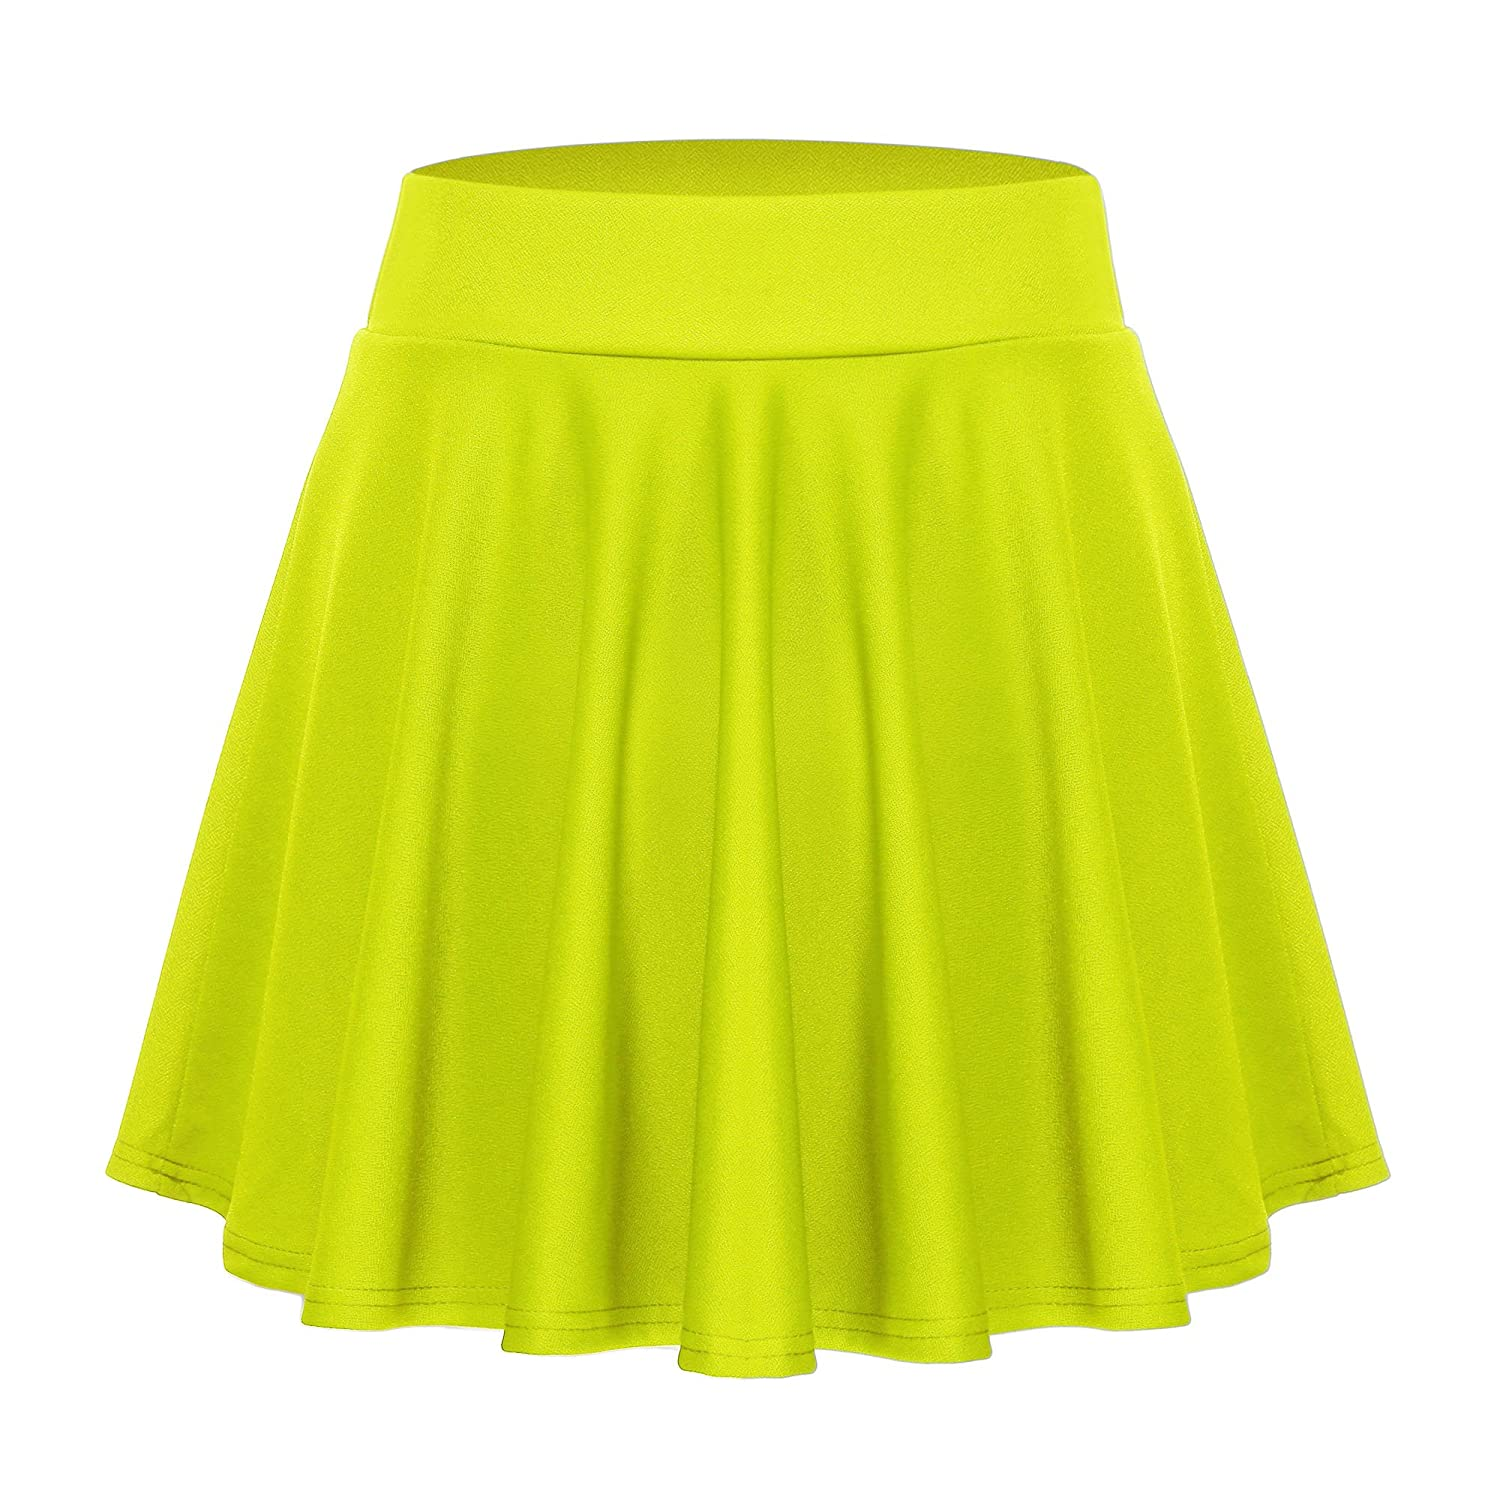 ACEVOG Women's Casual Basic Versatile Stretchy Waist Flared Mini Skater Skirt